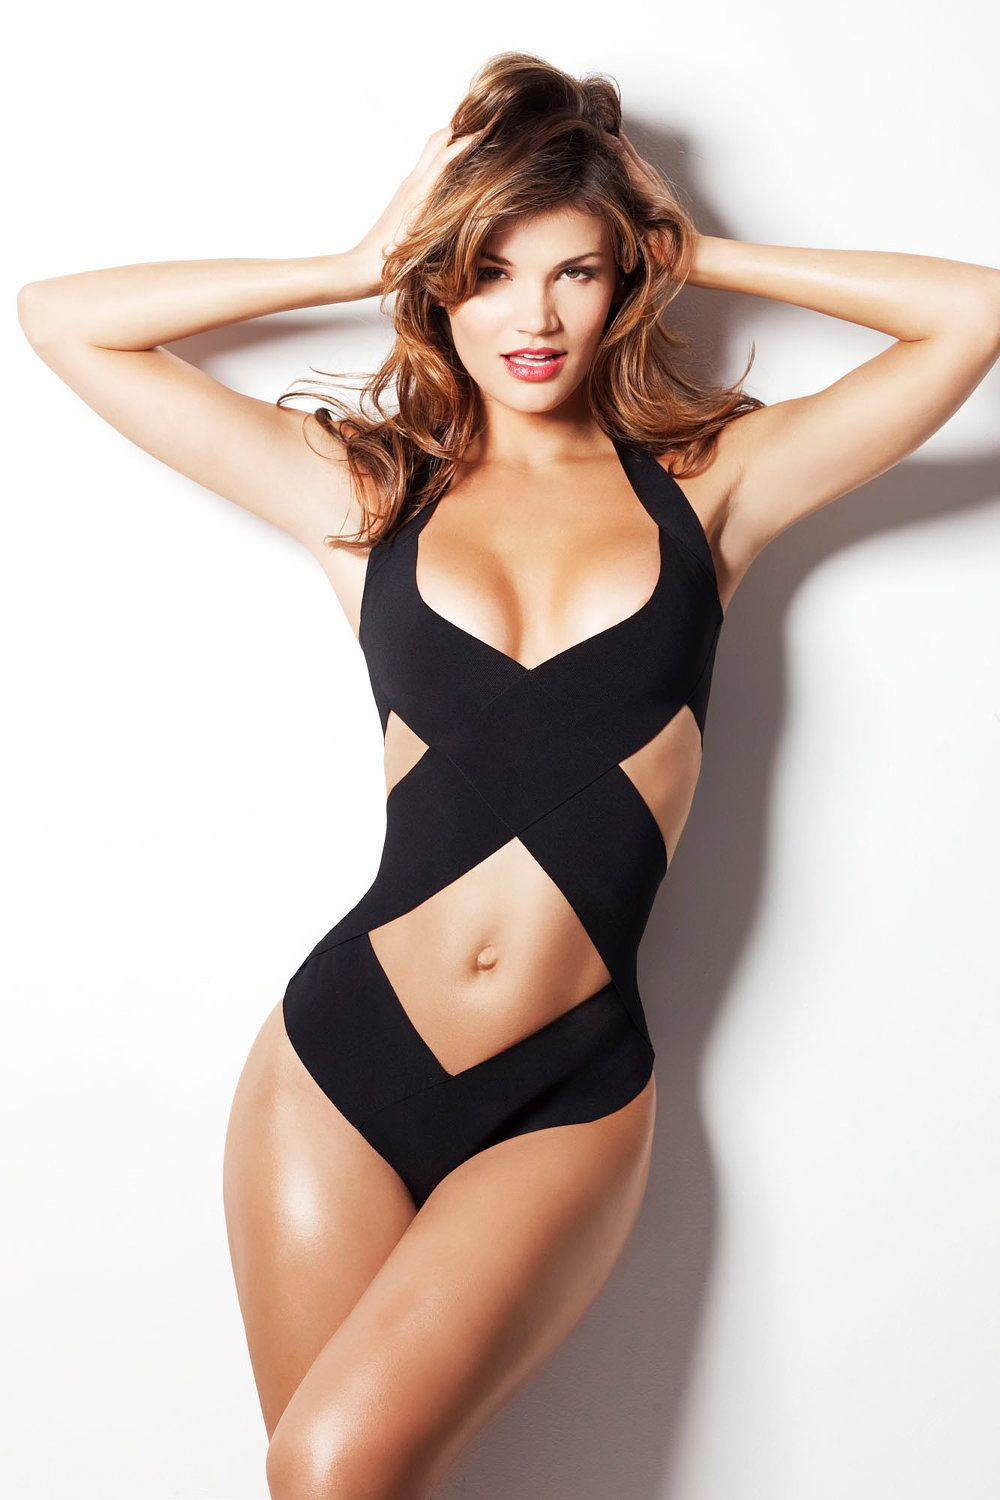 94c7e84c39af4 ... swimsuits and beachwear with attractive price, shop now! holy sexy  batman! if i had this body, i would go somewhere tropical & rock this  business ...